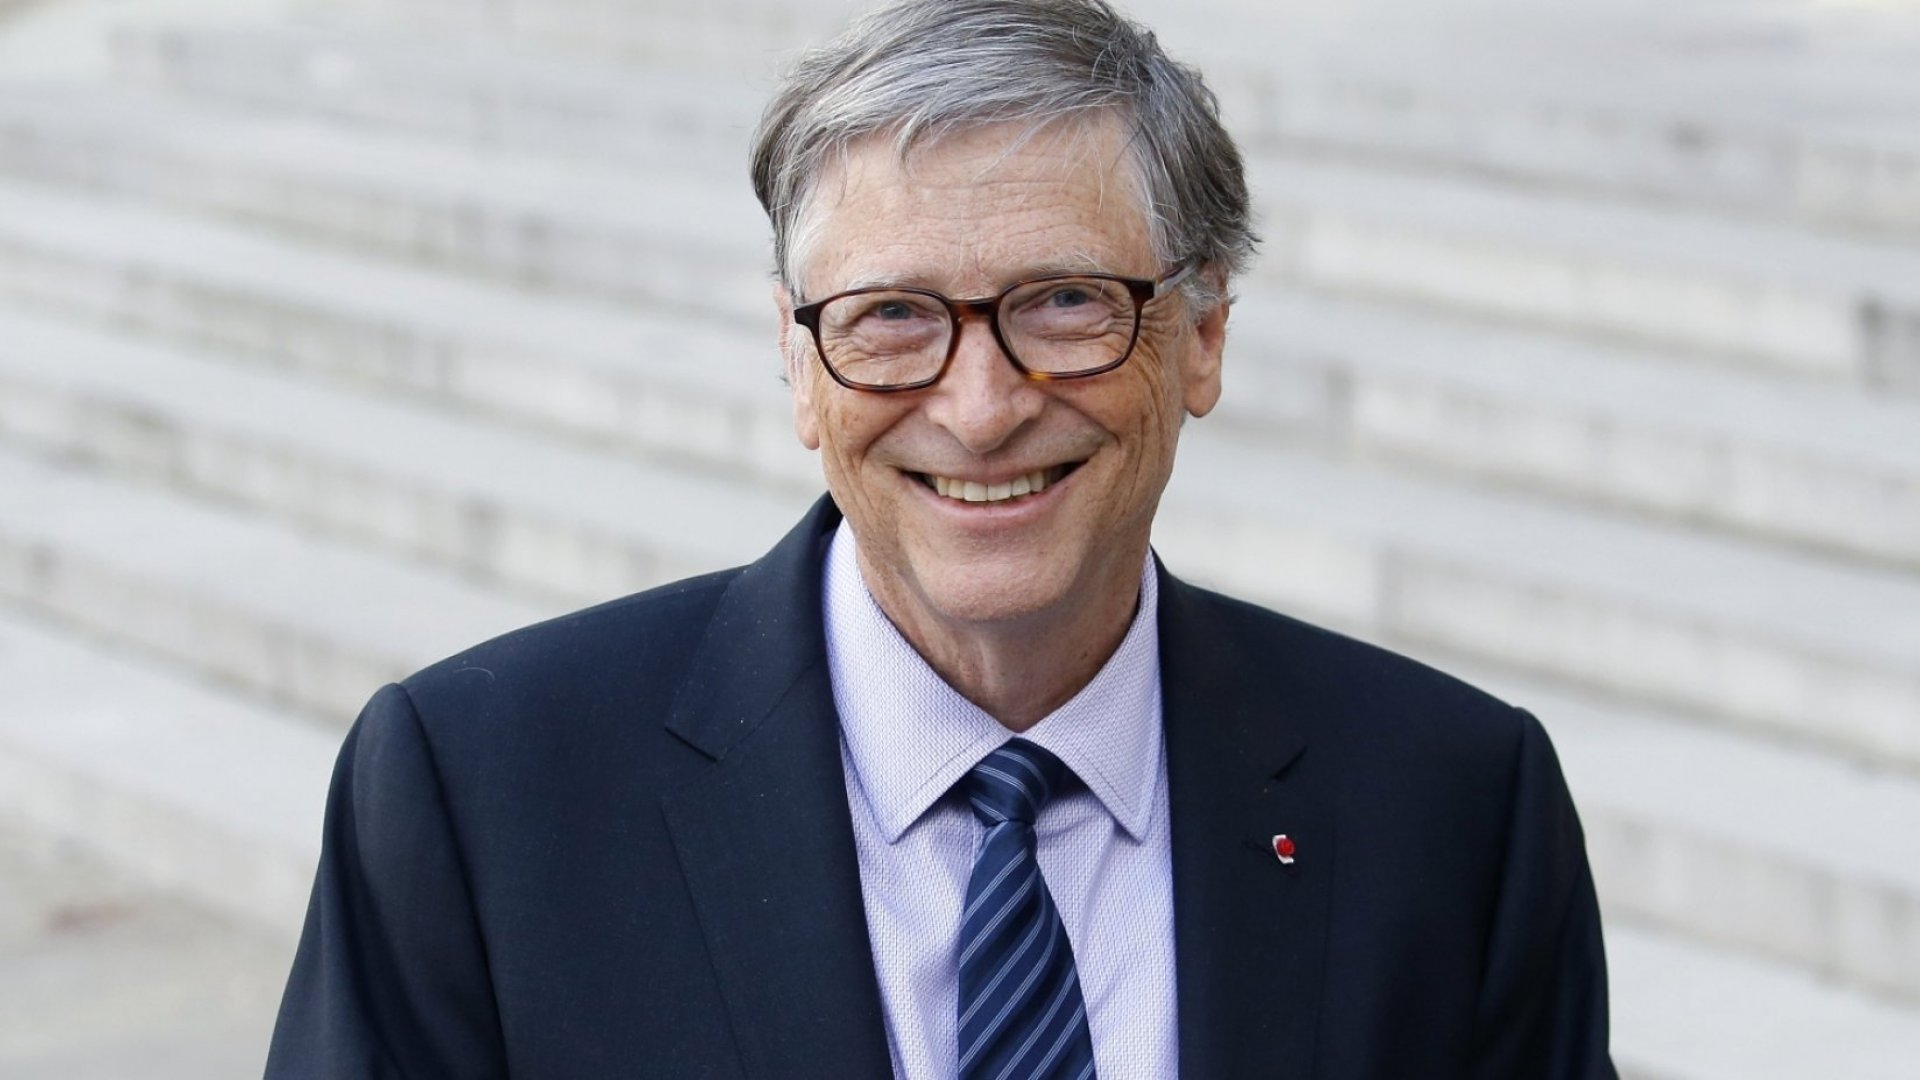 Want to Simplify Your Day? Try Any of These Smart Office Hacks from Bill Gates and 5 Other Famous Leaders